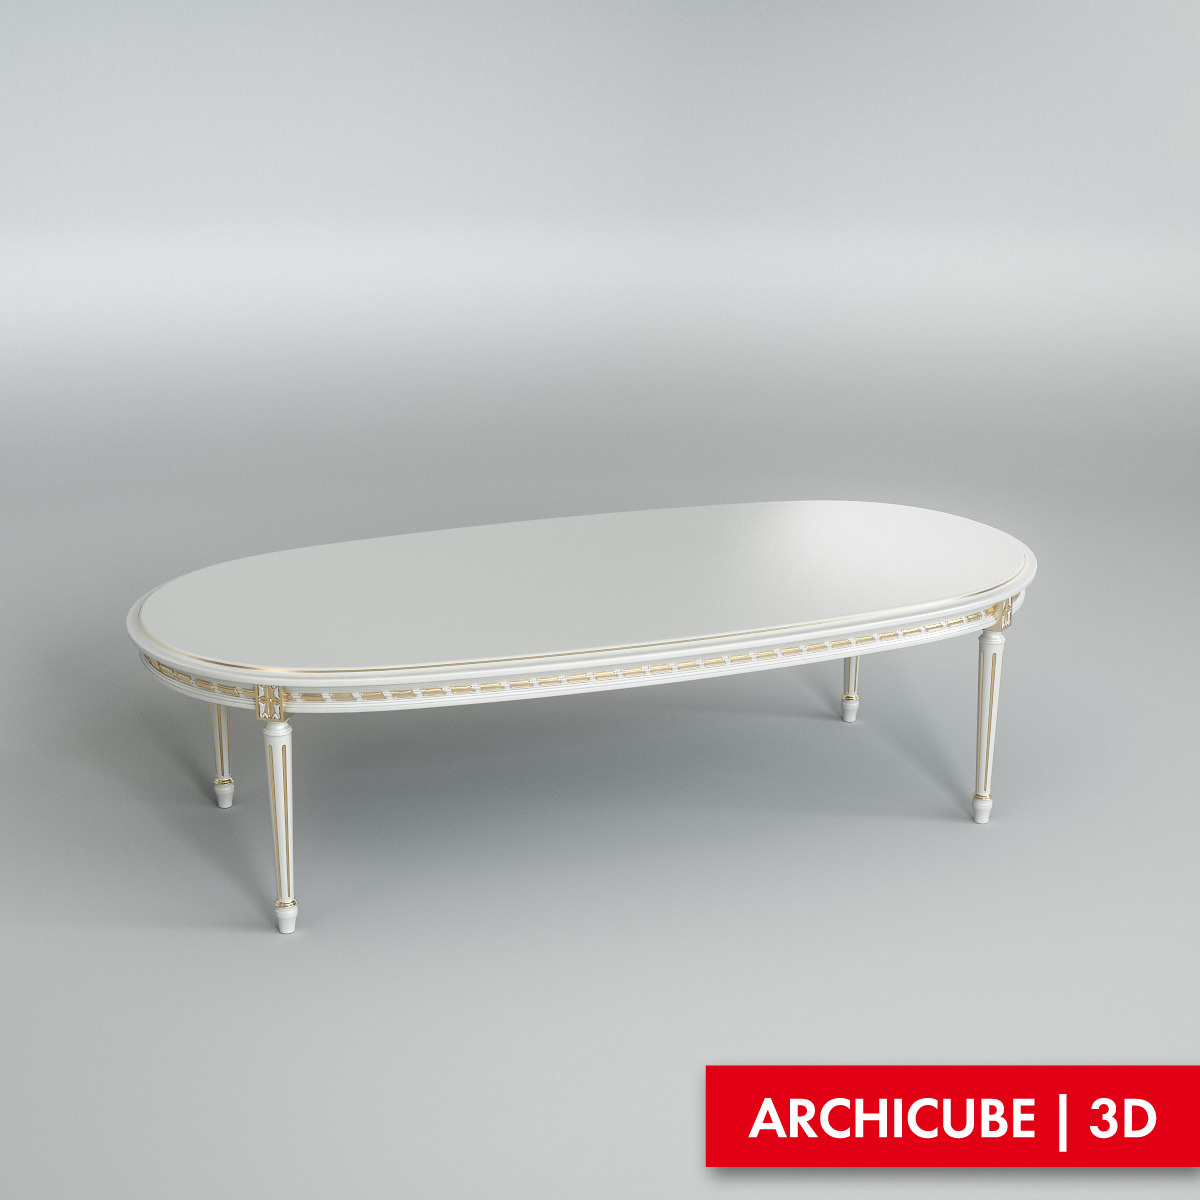 White dining table 002 3d model max obj fbx for Dining table latest model